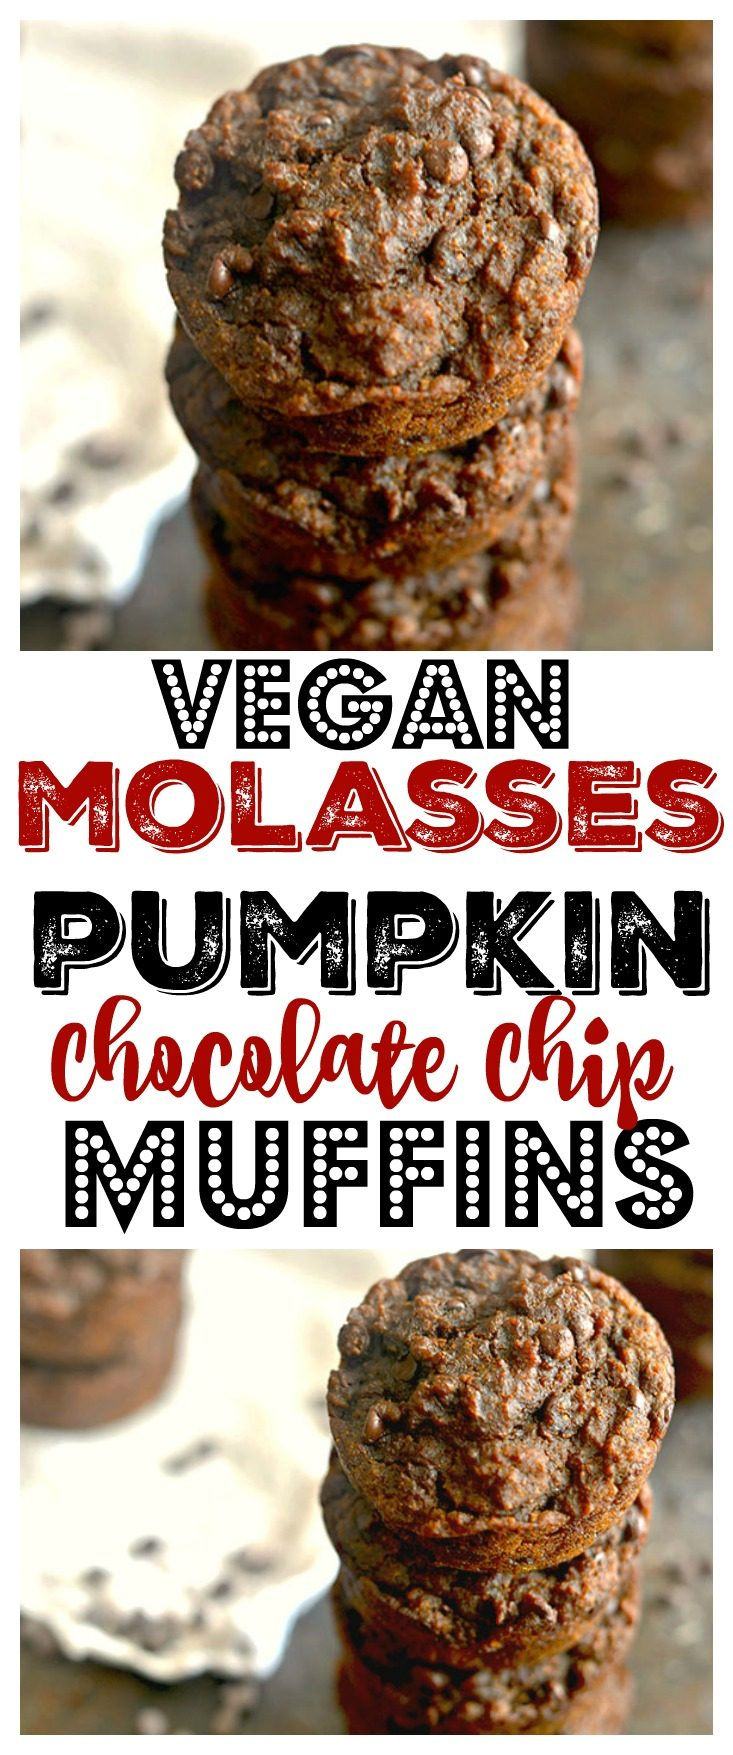 HealthyMolasses Pumpkin Chocolate Chip Muffins lightlysweetenedwith applesauce, brown sugar and molasses. A tasty chocolate treatpacked with fall spices, irresistible flavors and 127 calories each! Gluten Free + Vegan + Low Calorie